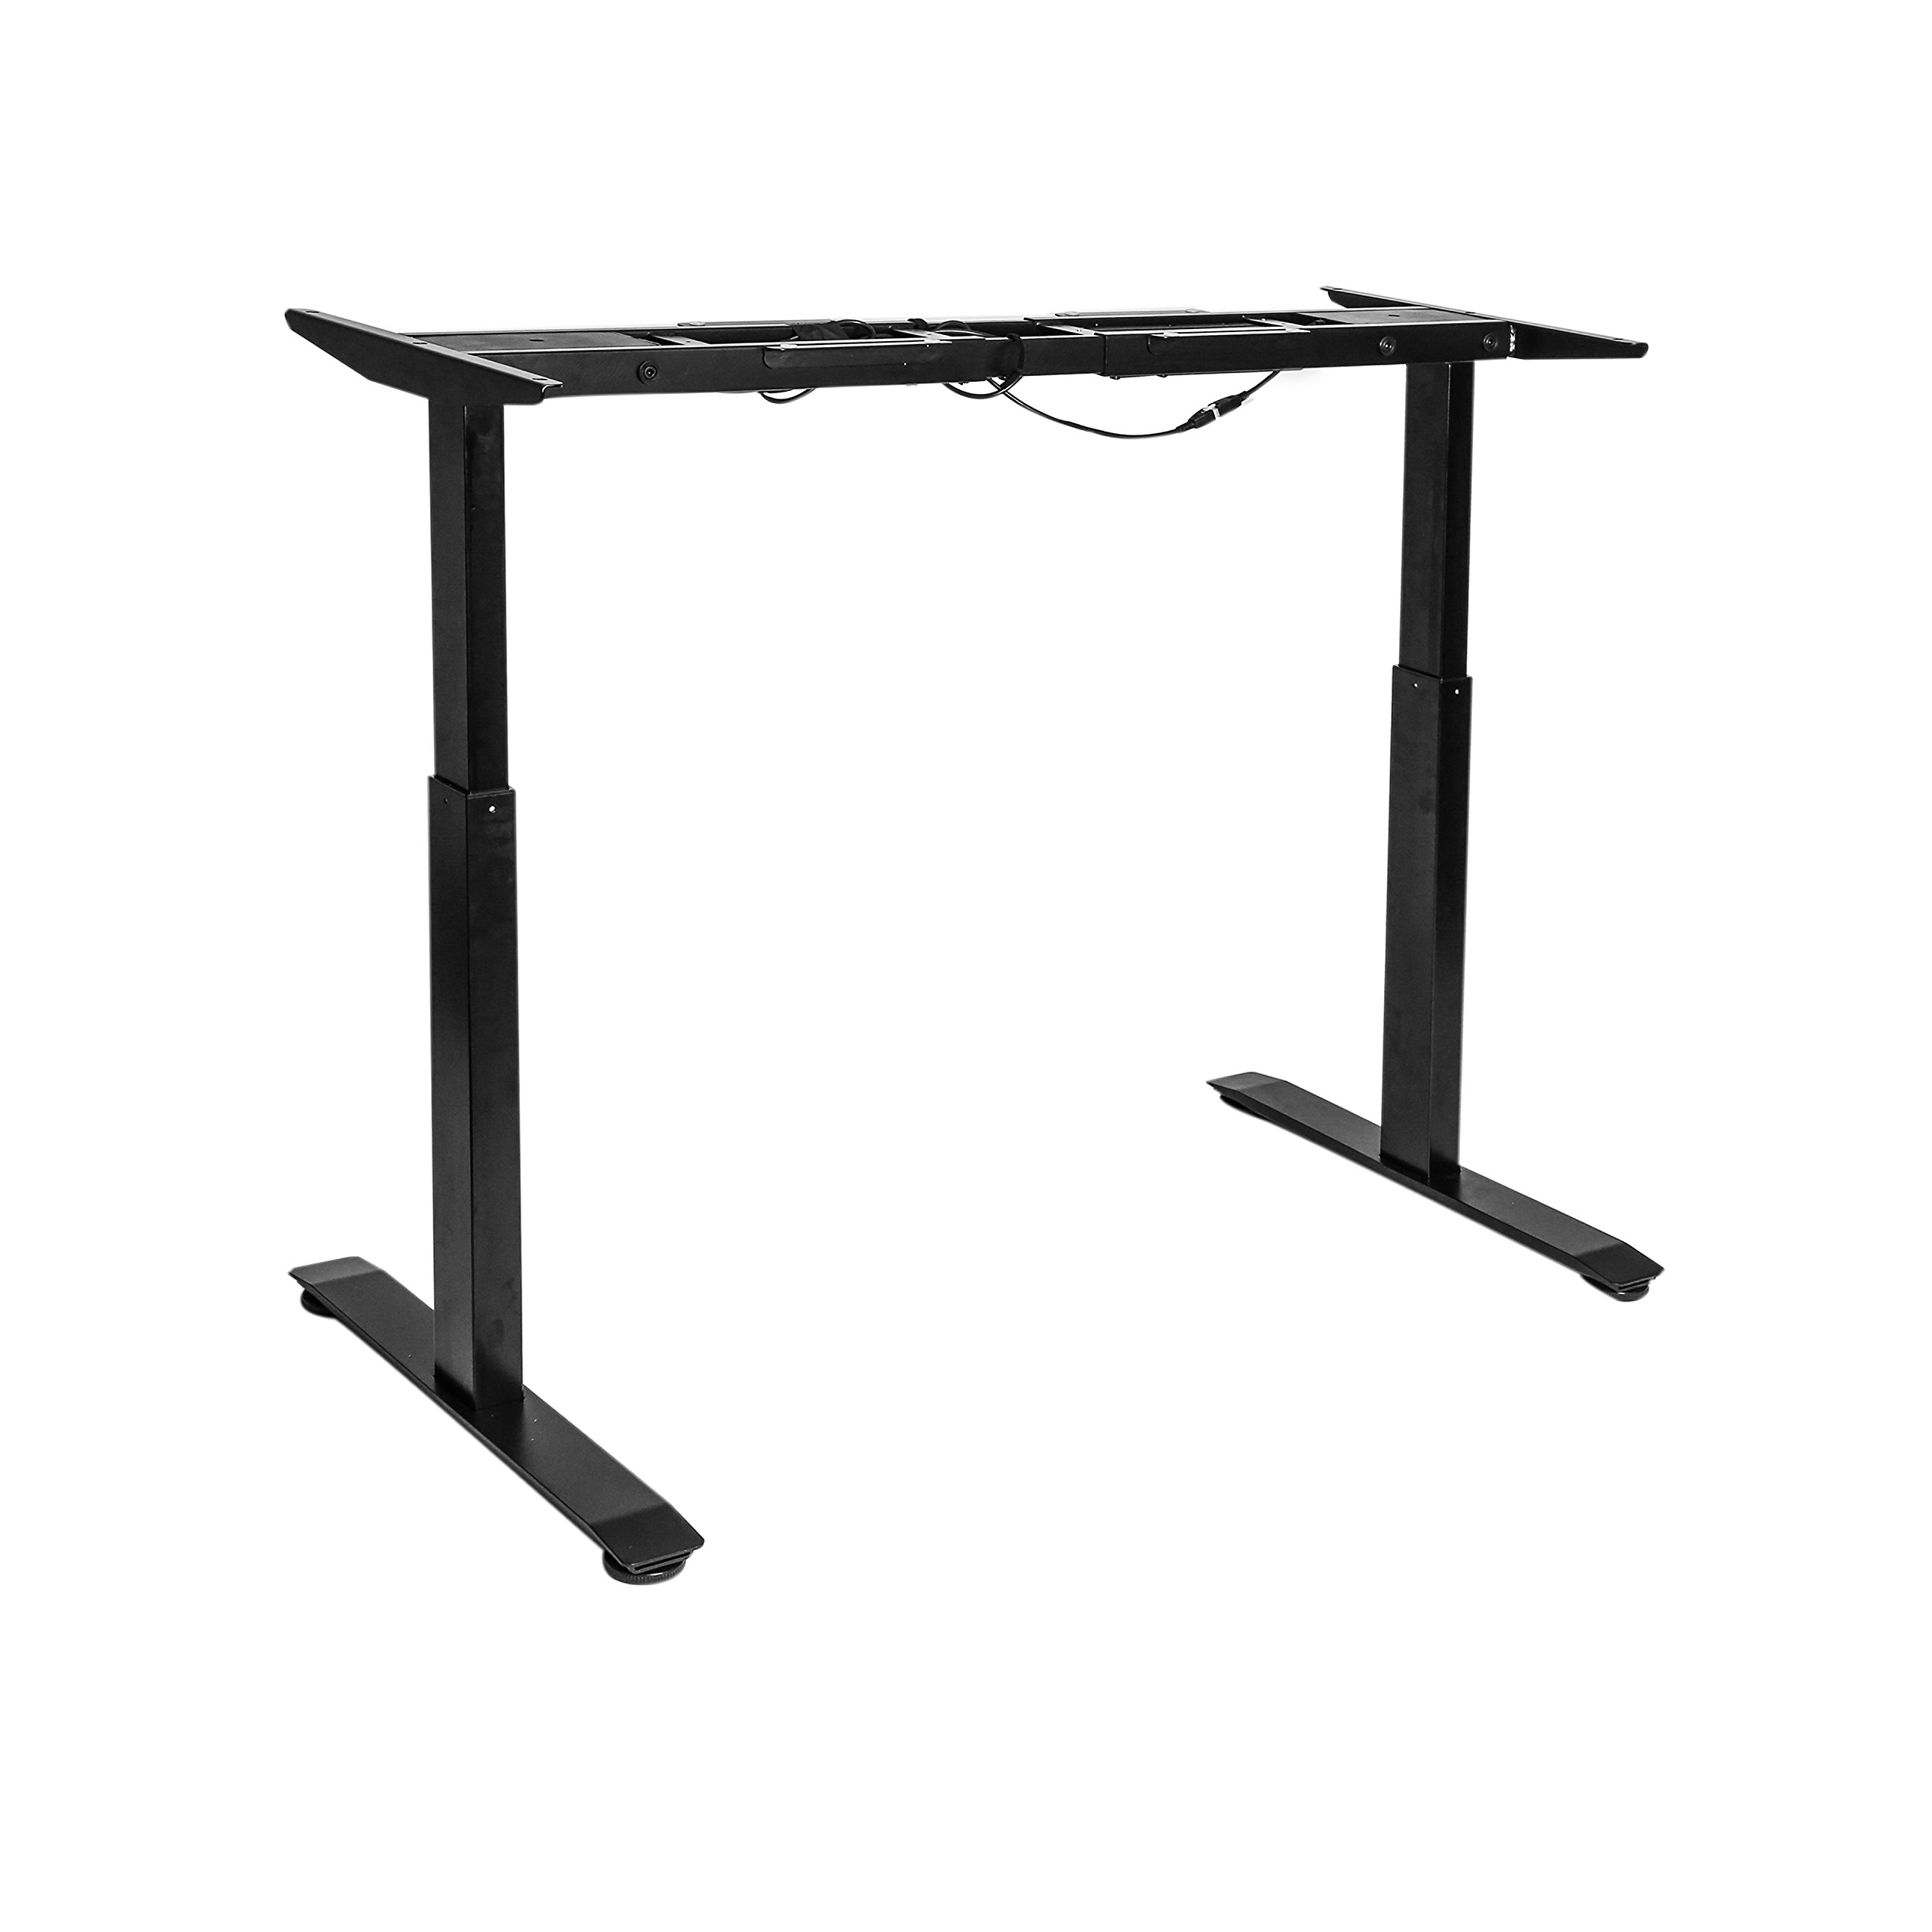 Seville Classics OFF65802 AIRLIFT S2 Electric Height-Adjustable Standing Desk (BASE ONLY) ONLY), Black